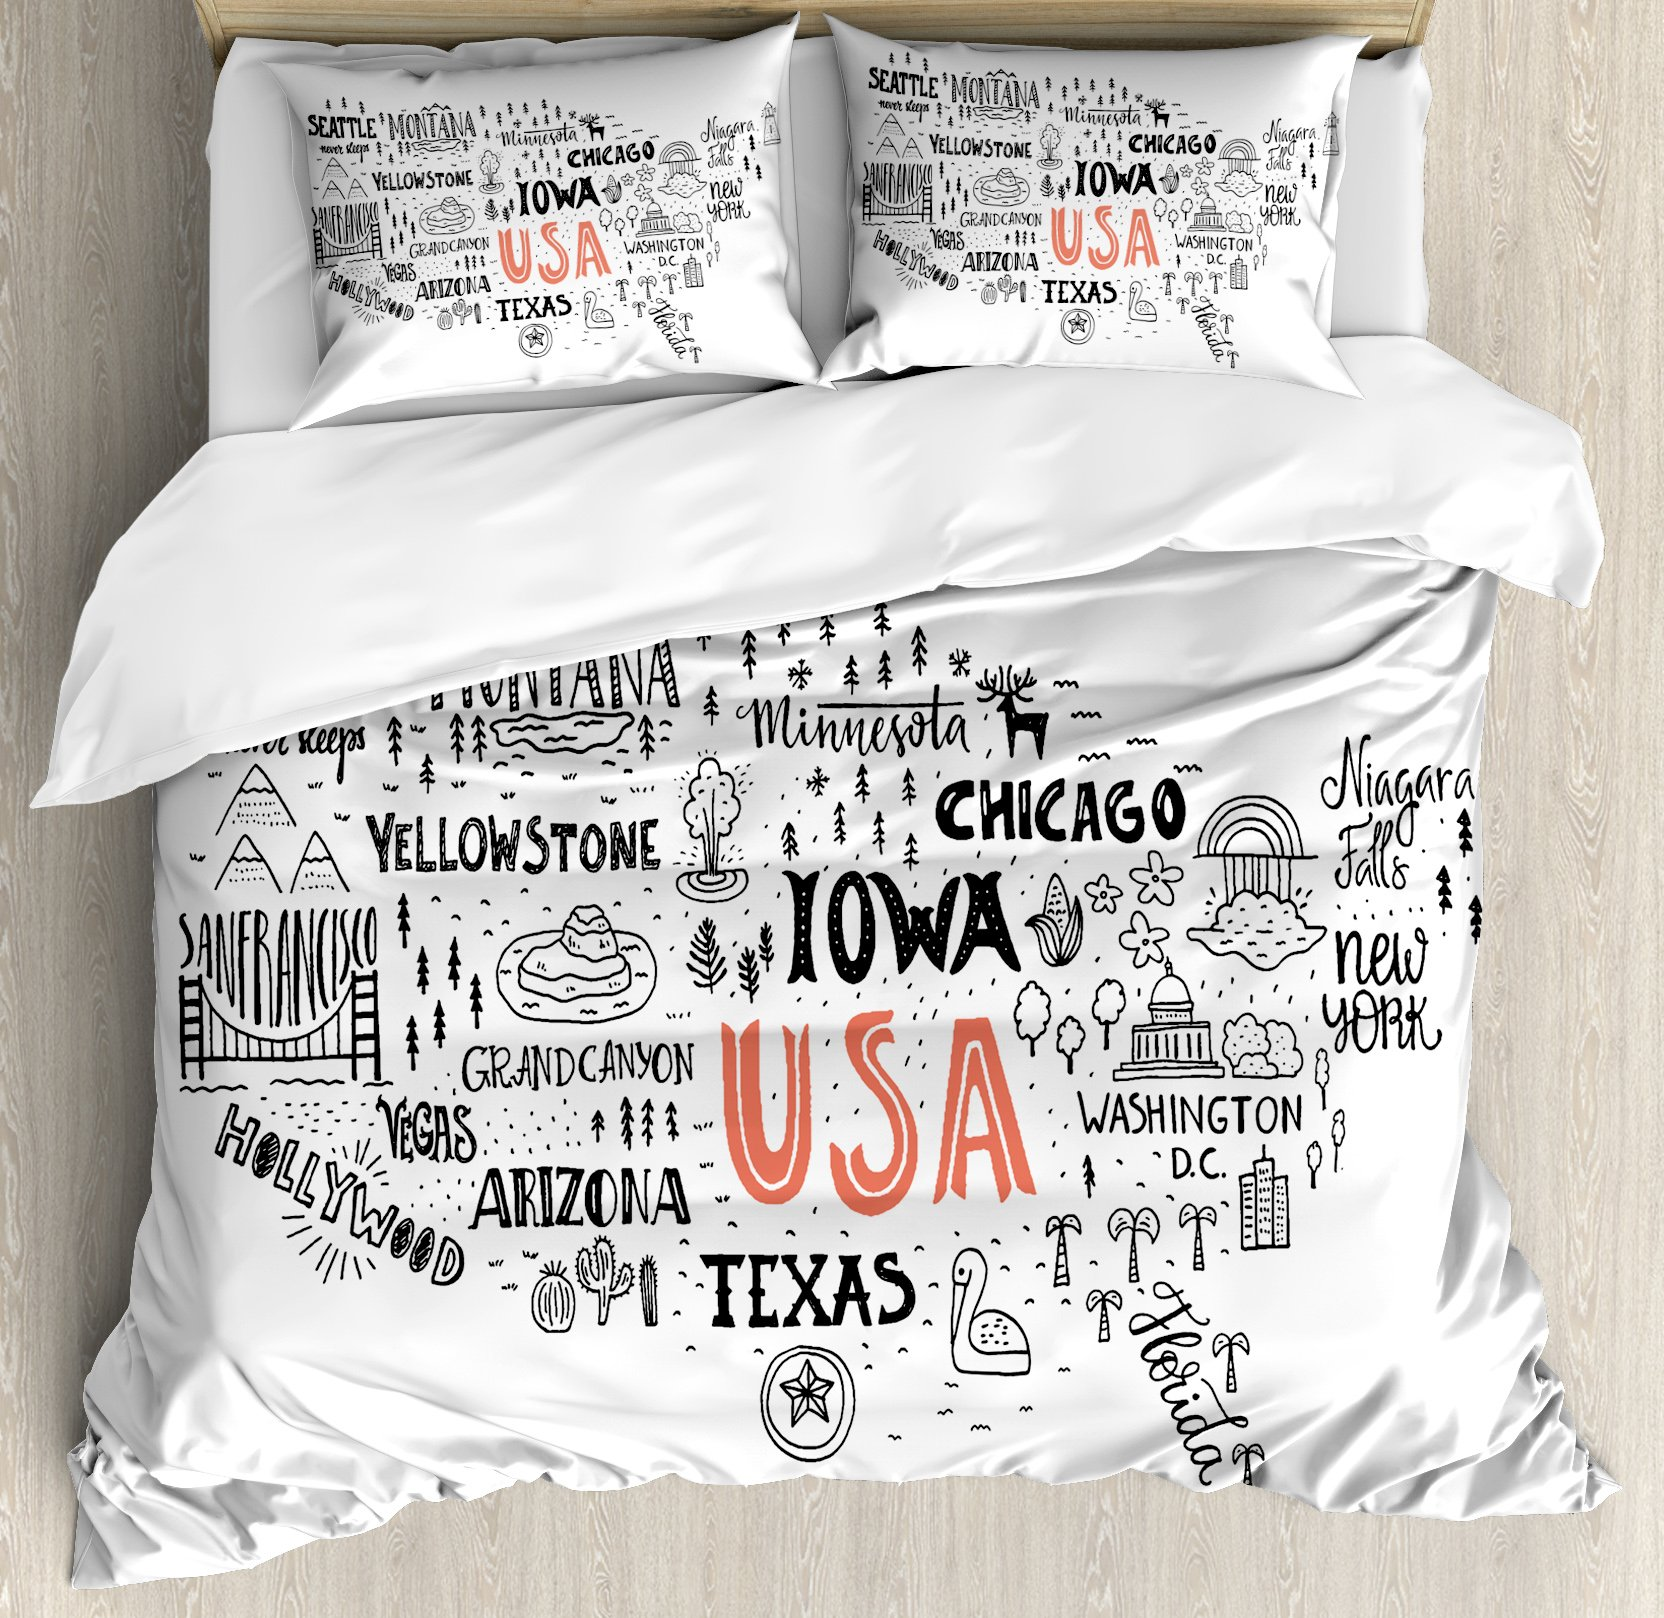 USA Map Queen Size Duvet Cover Set by Ambesonne, United States of America City Typography Pattern with Local Figures Concept, Decorative 3 Piece Bedding Set with 2 Pillow Shams, Grey Coral White by Ambesonne